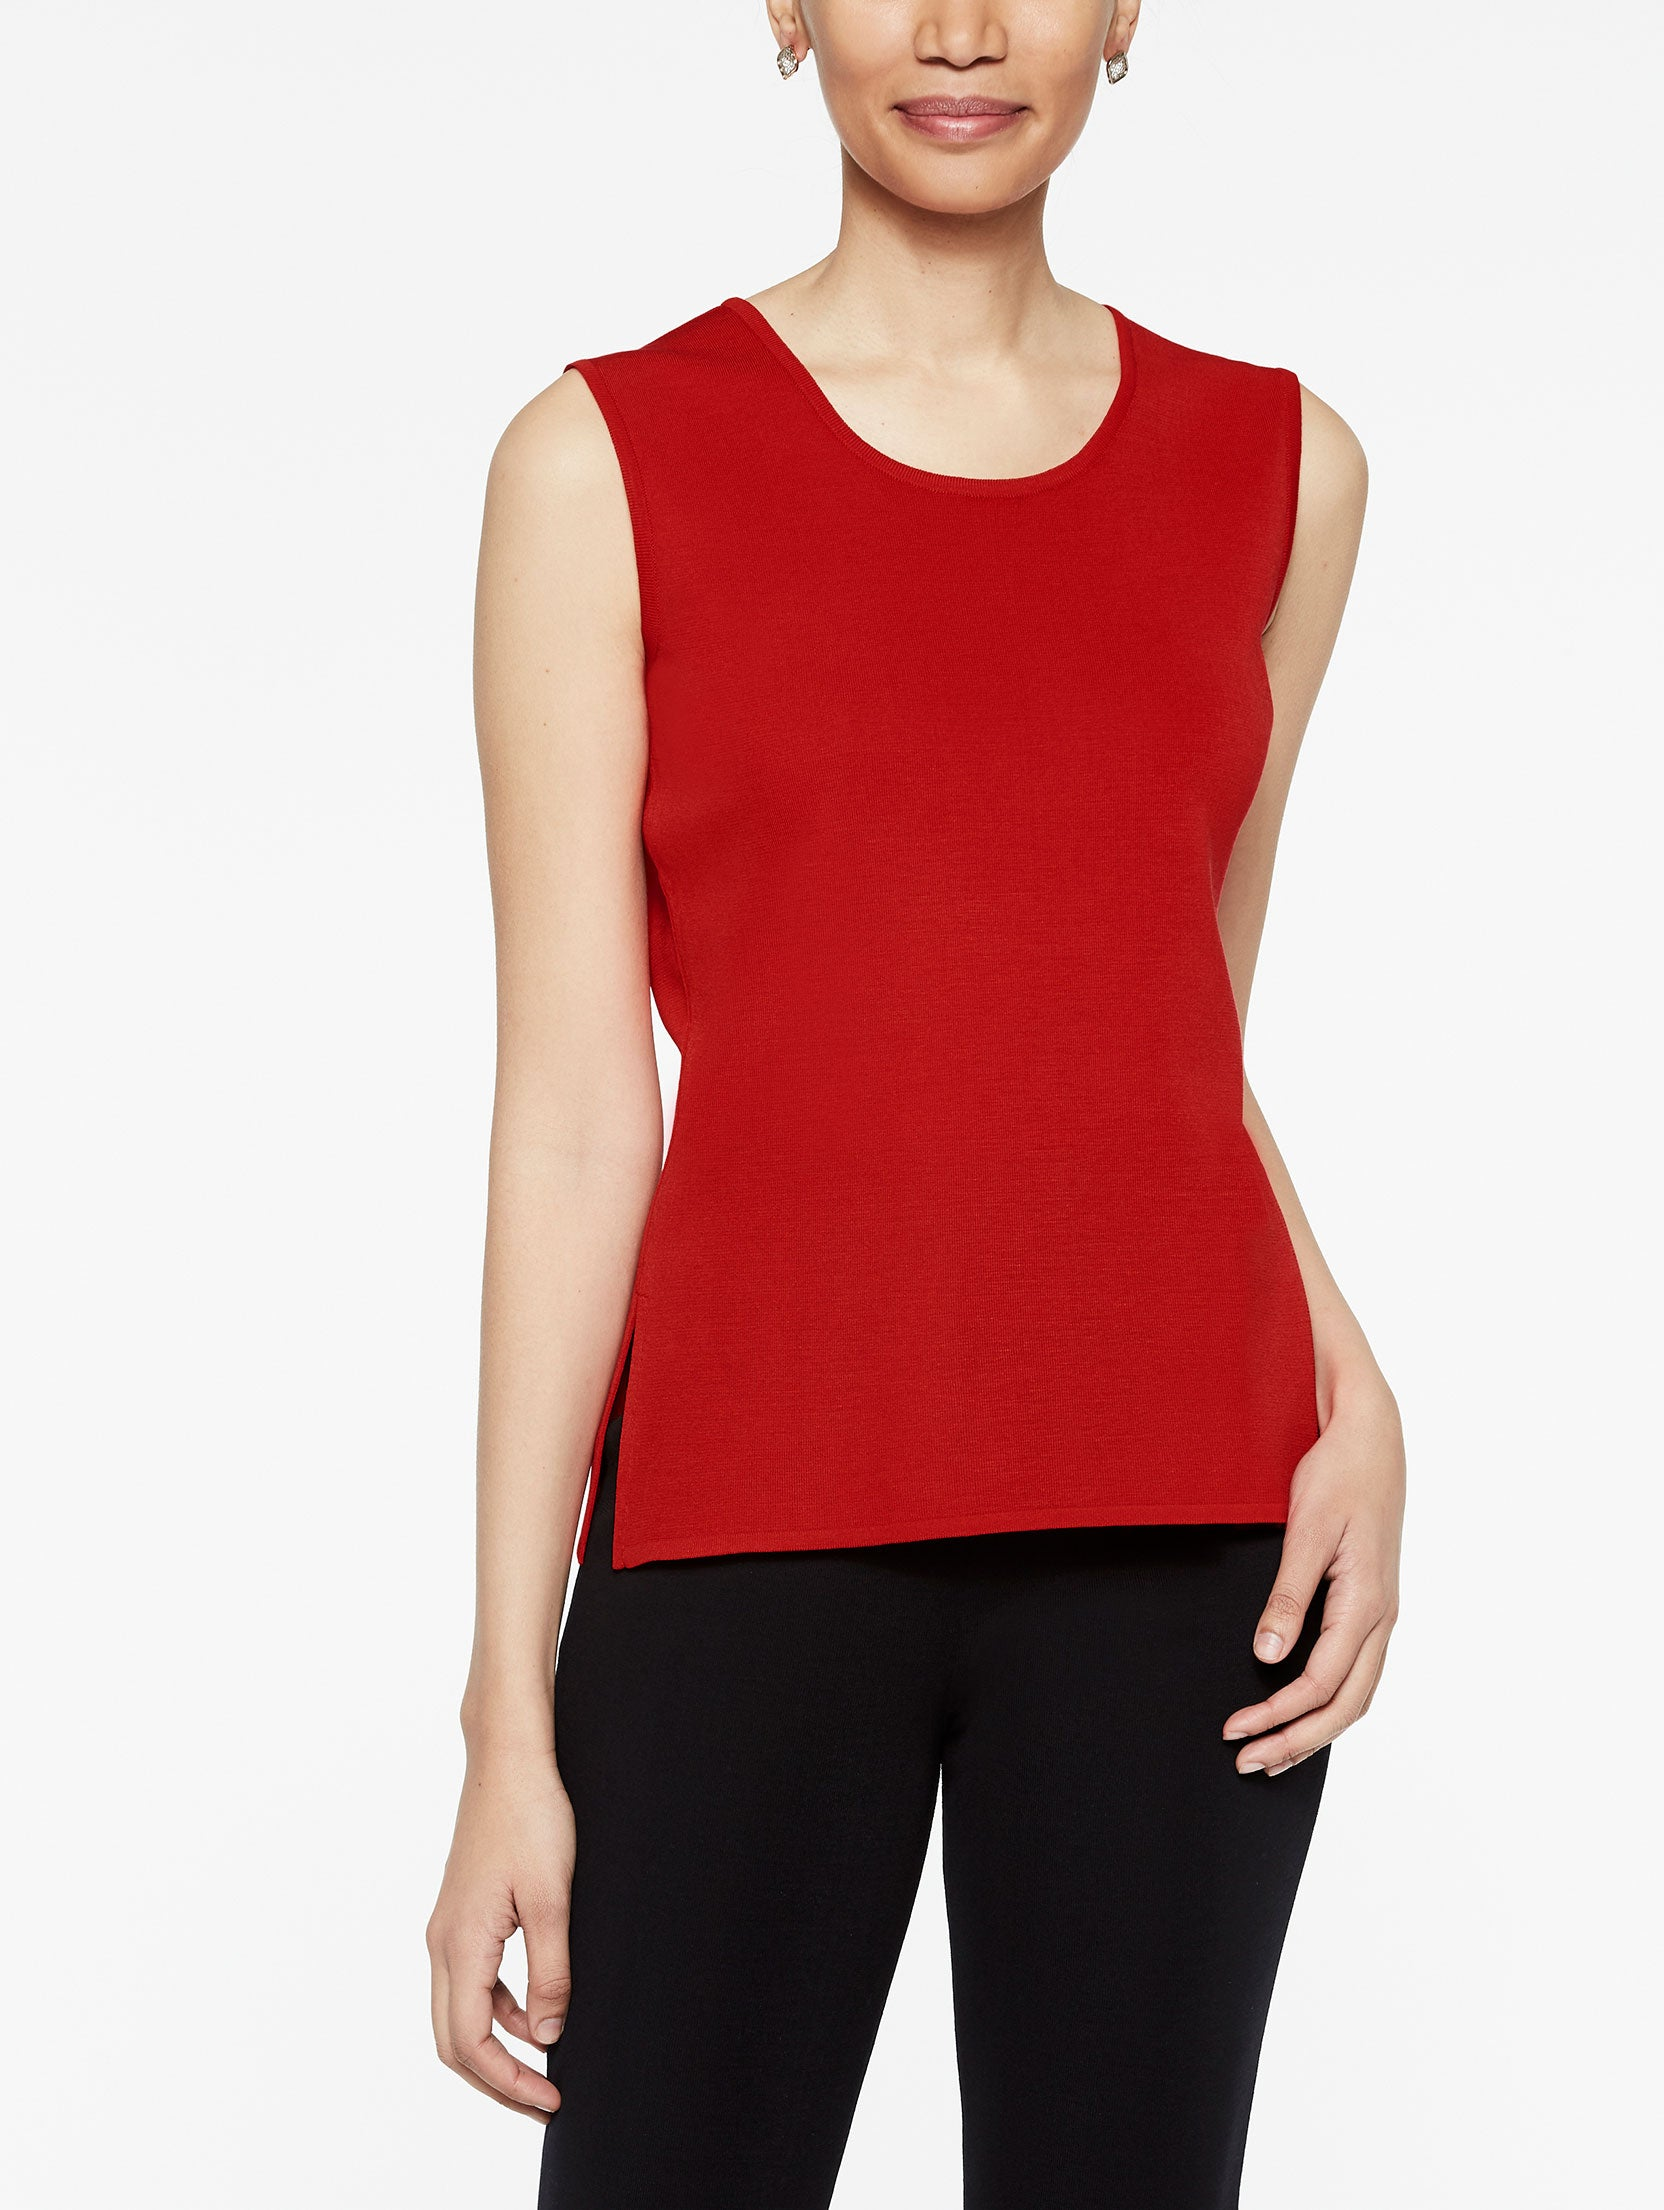 Tango Red Classic Knit Scoop Neck Tank Top, Plus Size Color Tango Red